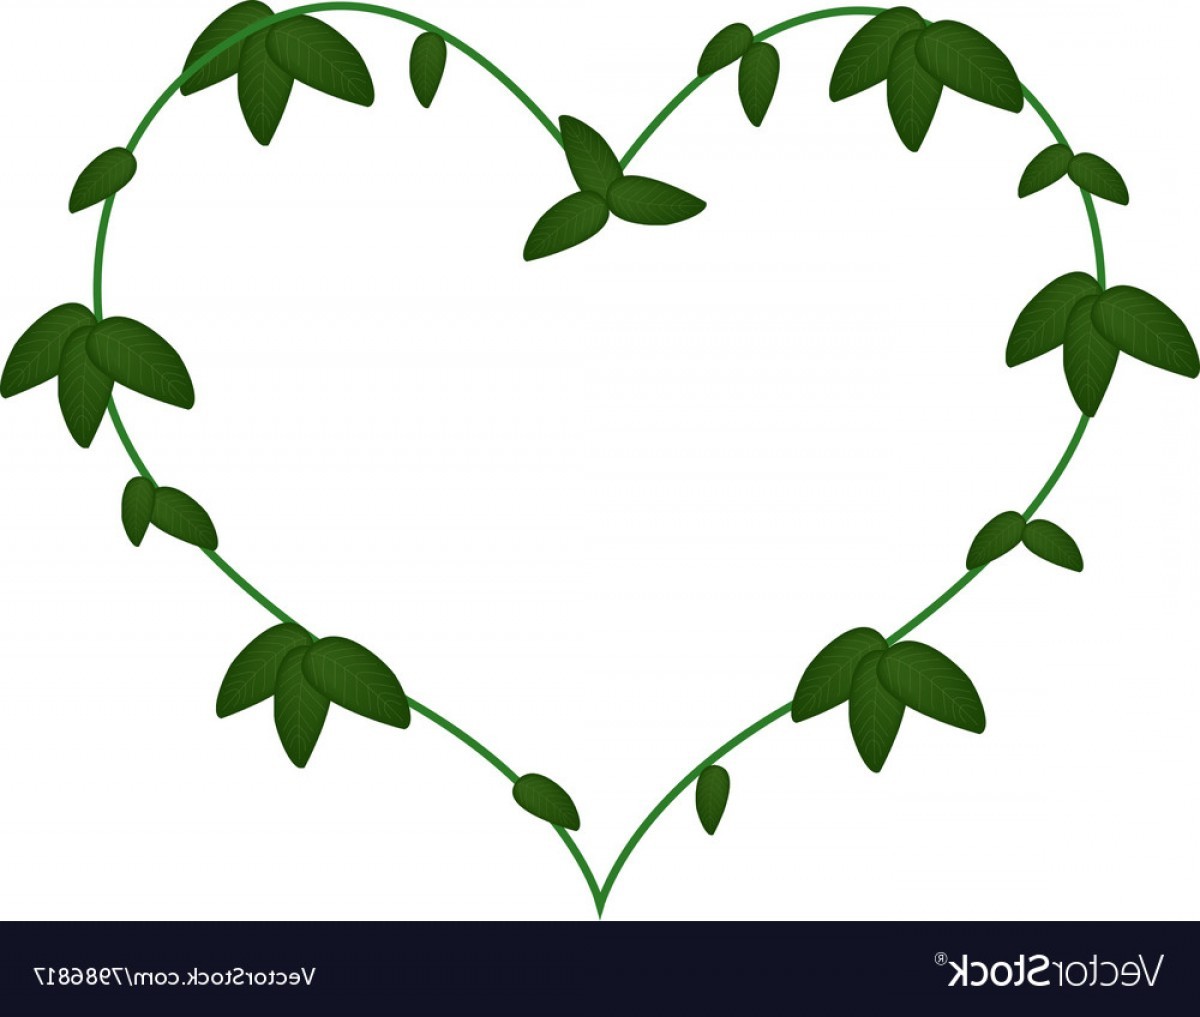 Green Vine Vector: Green Vine Leaves In A Heart Shape Wreath Vector